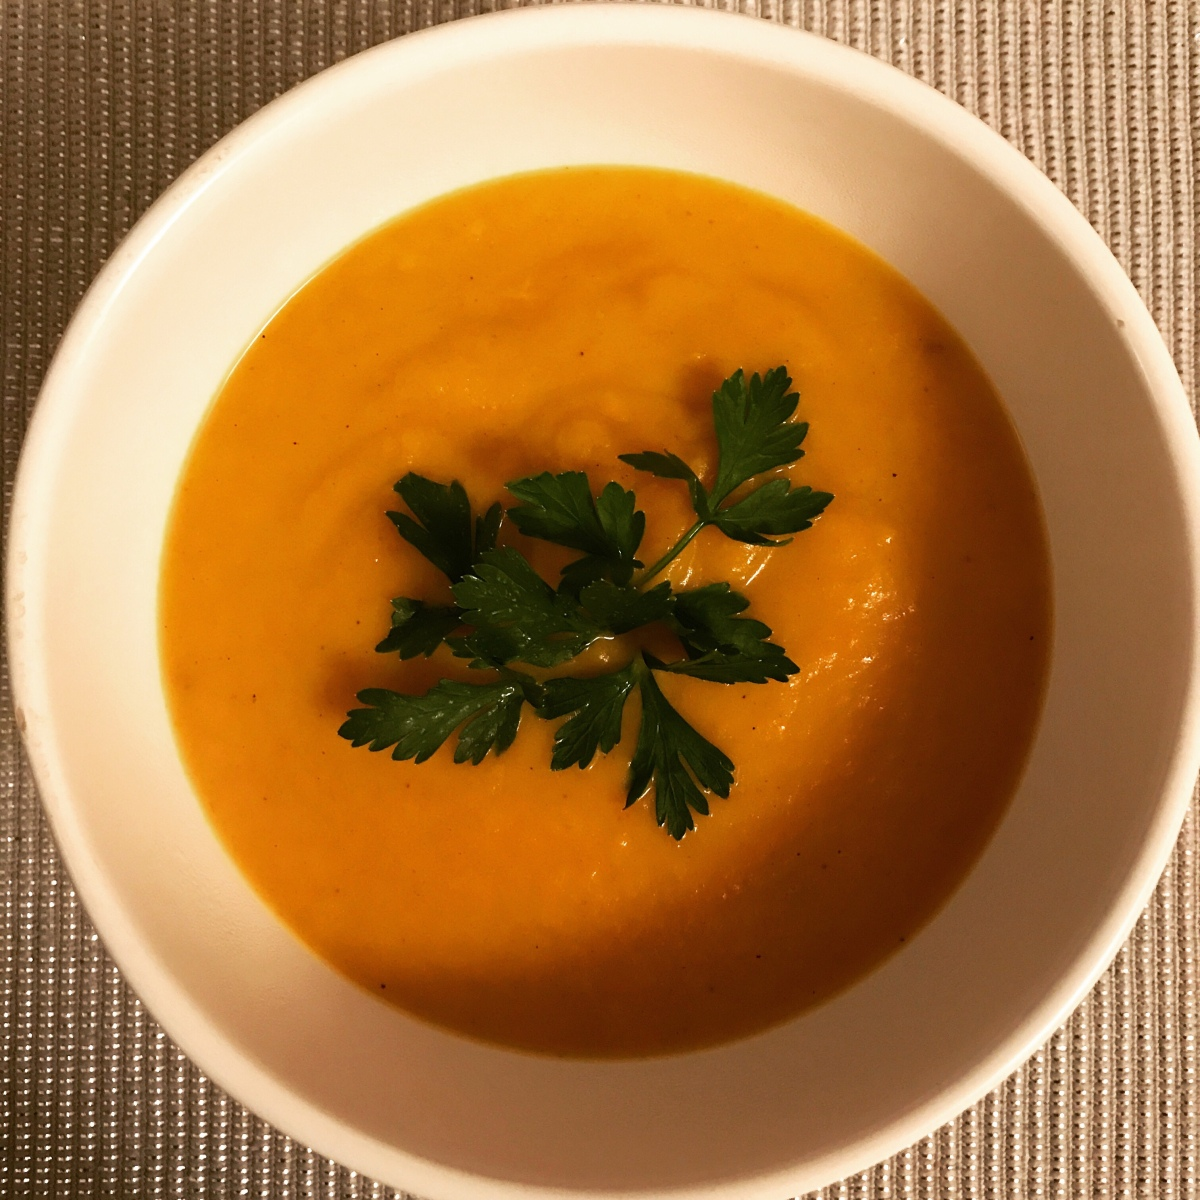 Spicy ginger and carrot soup